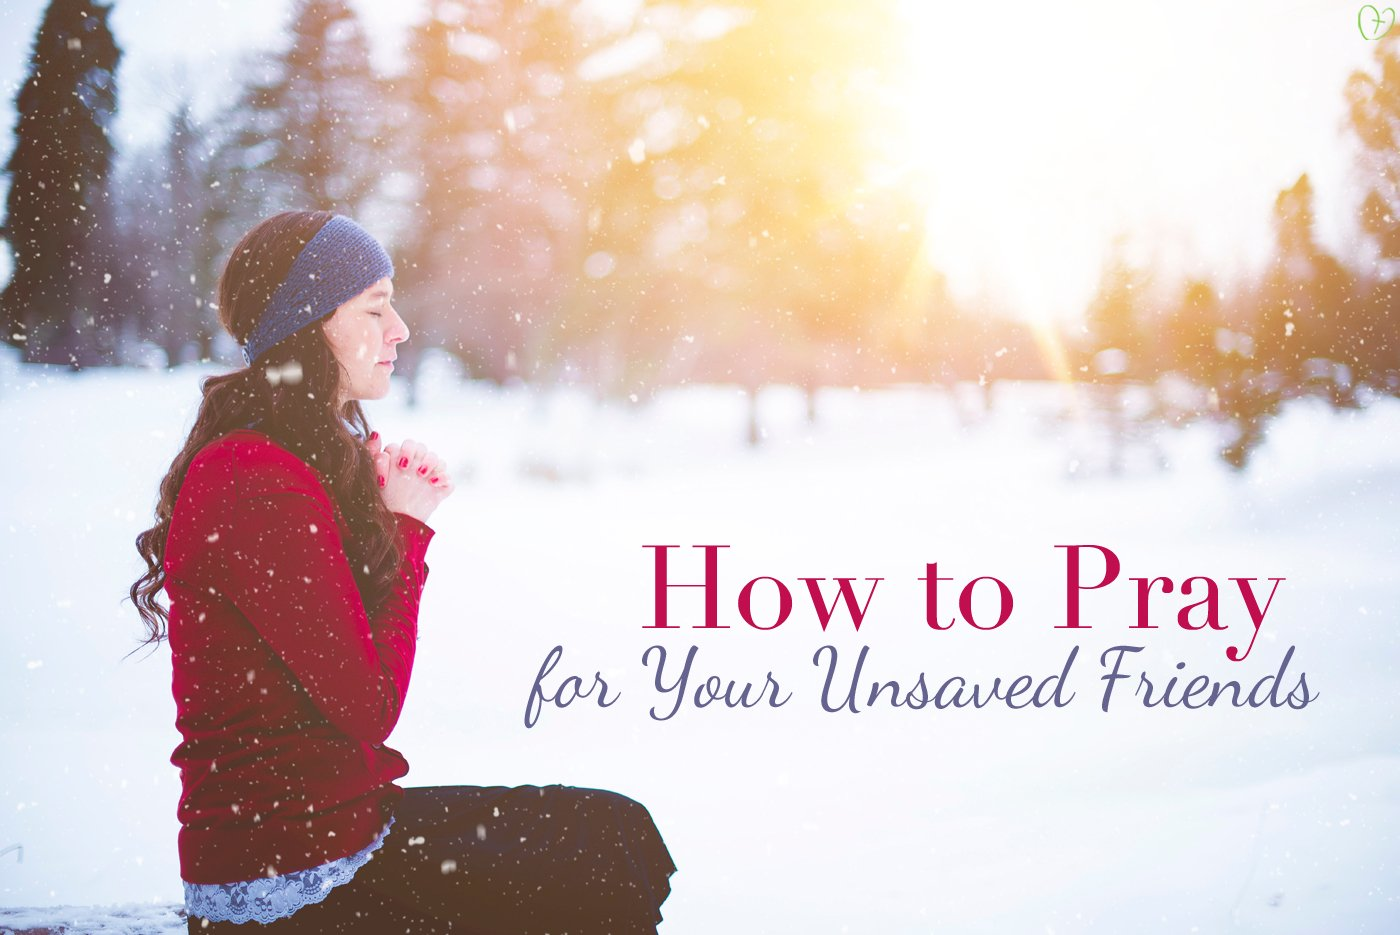 How to Pray for Your Unsaved Friends